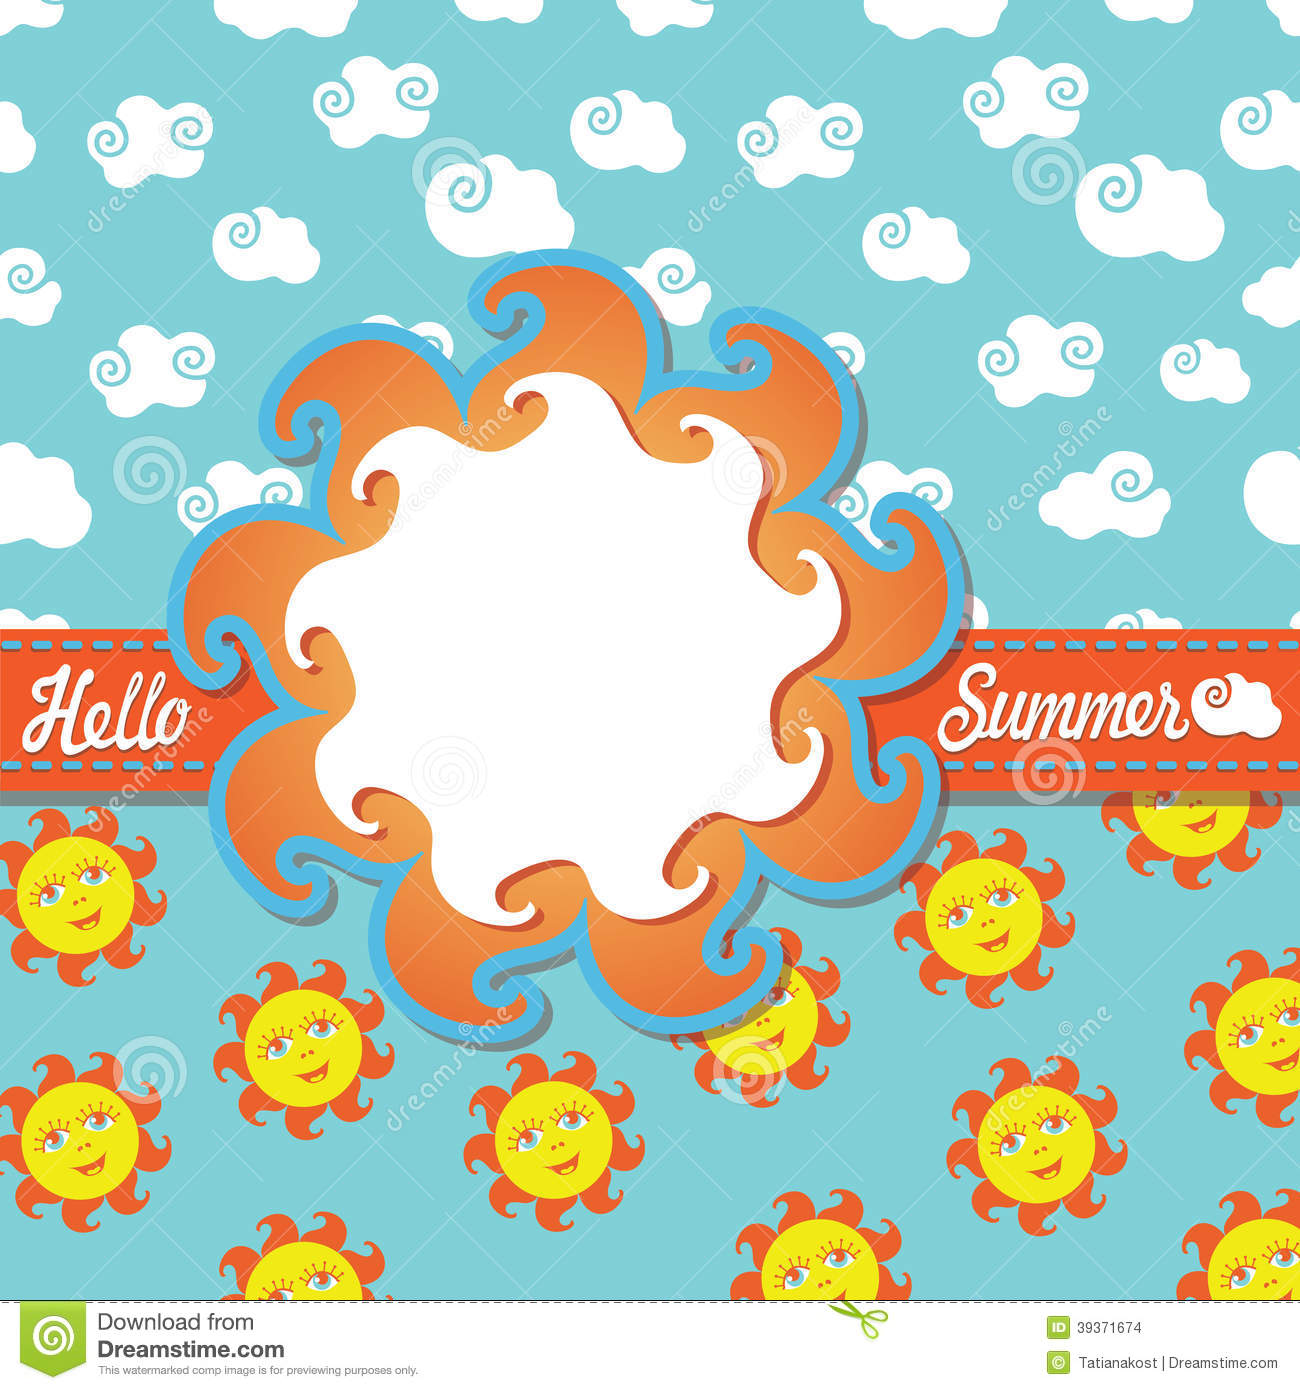 Design Template Hello Summer With Cartoon Sun And Stock Vector - Image: 39371674